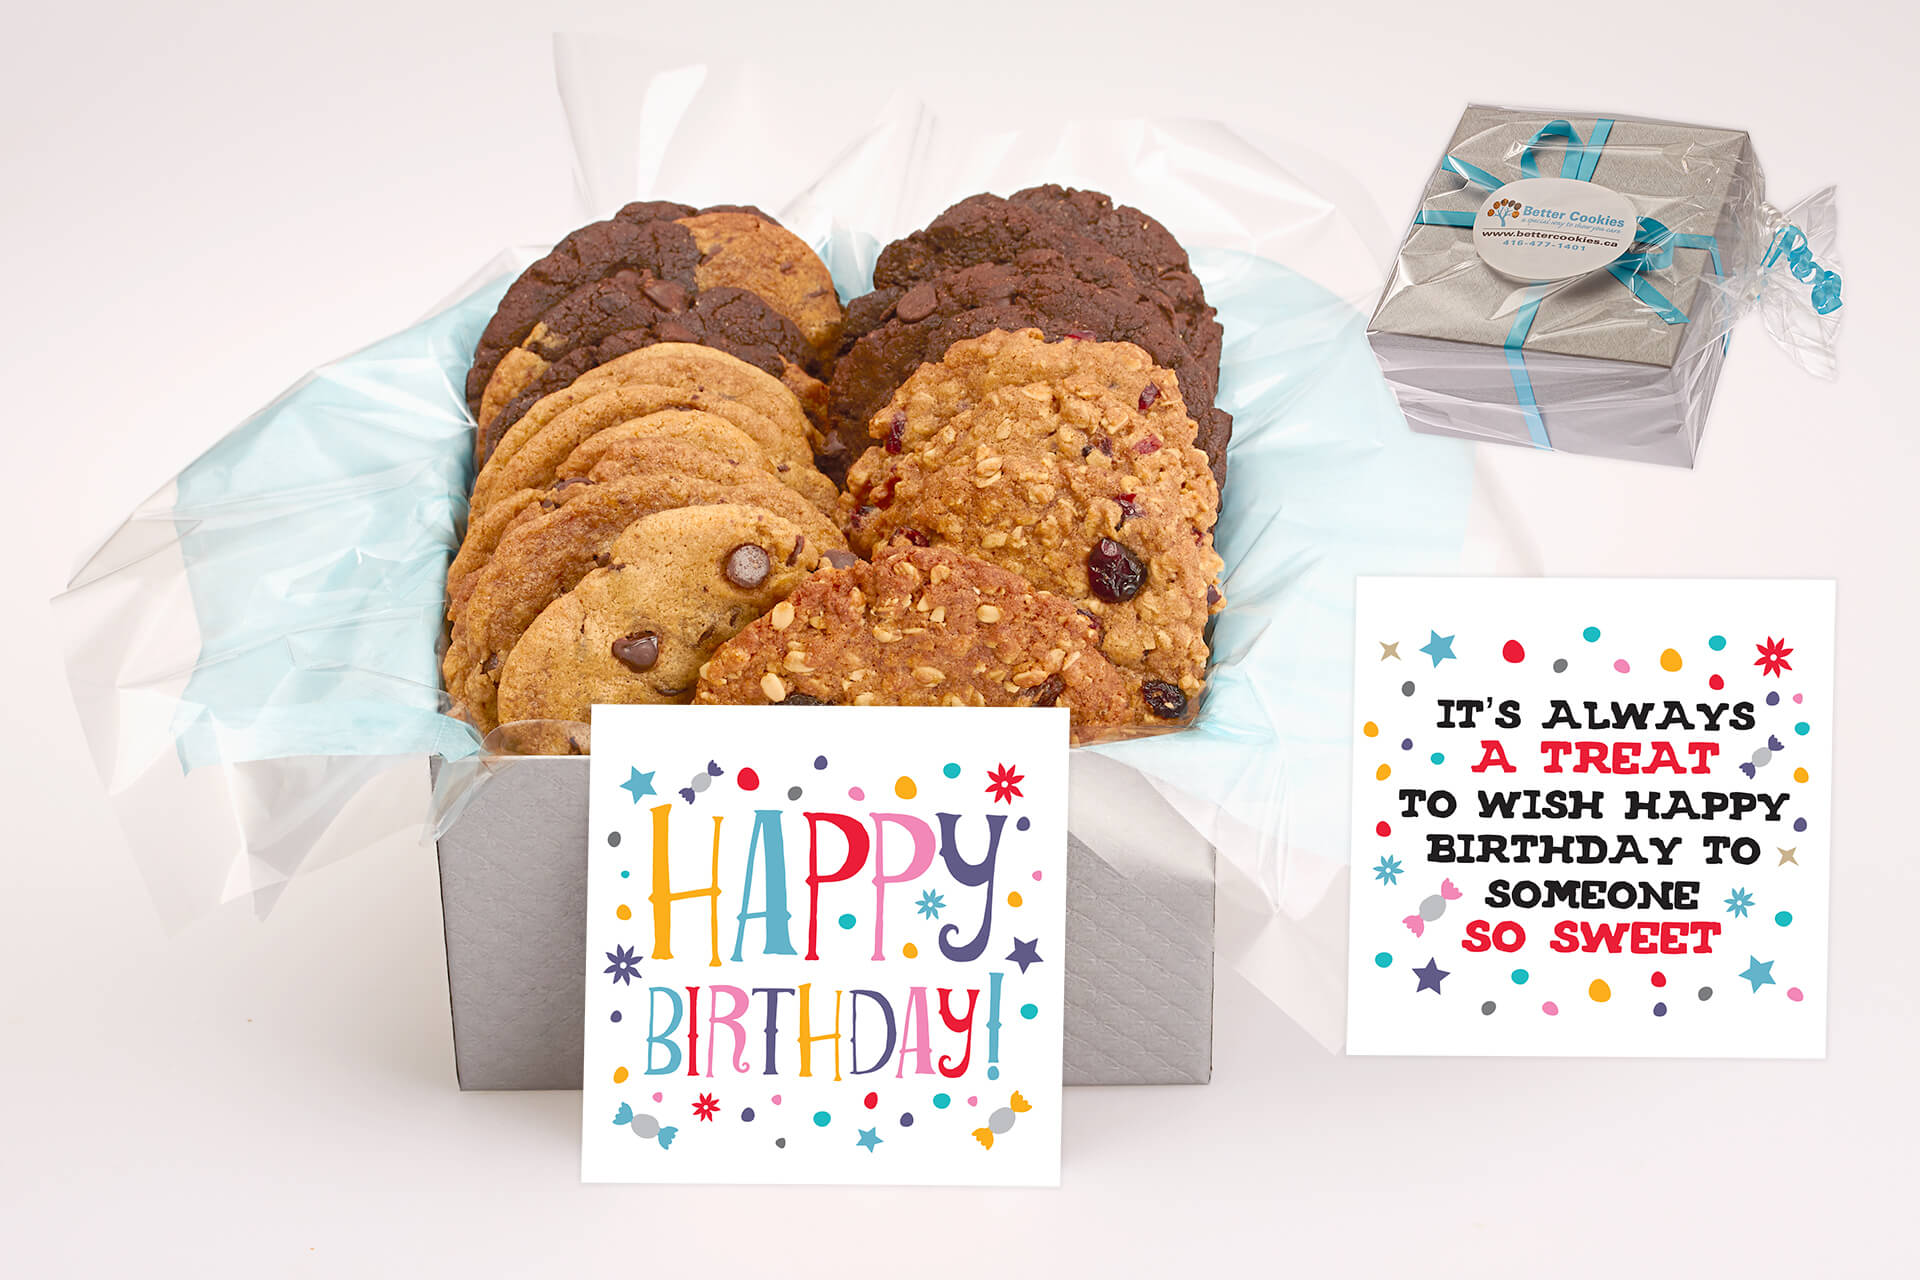 Cookie Gift Box Delivery across Canada - Send a beautiful Birthday gift online